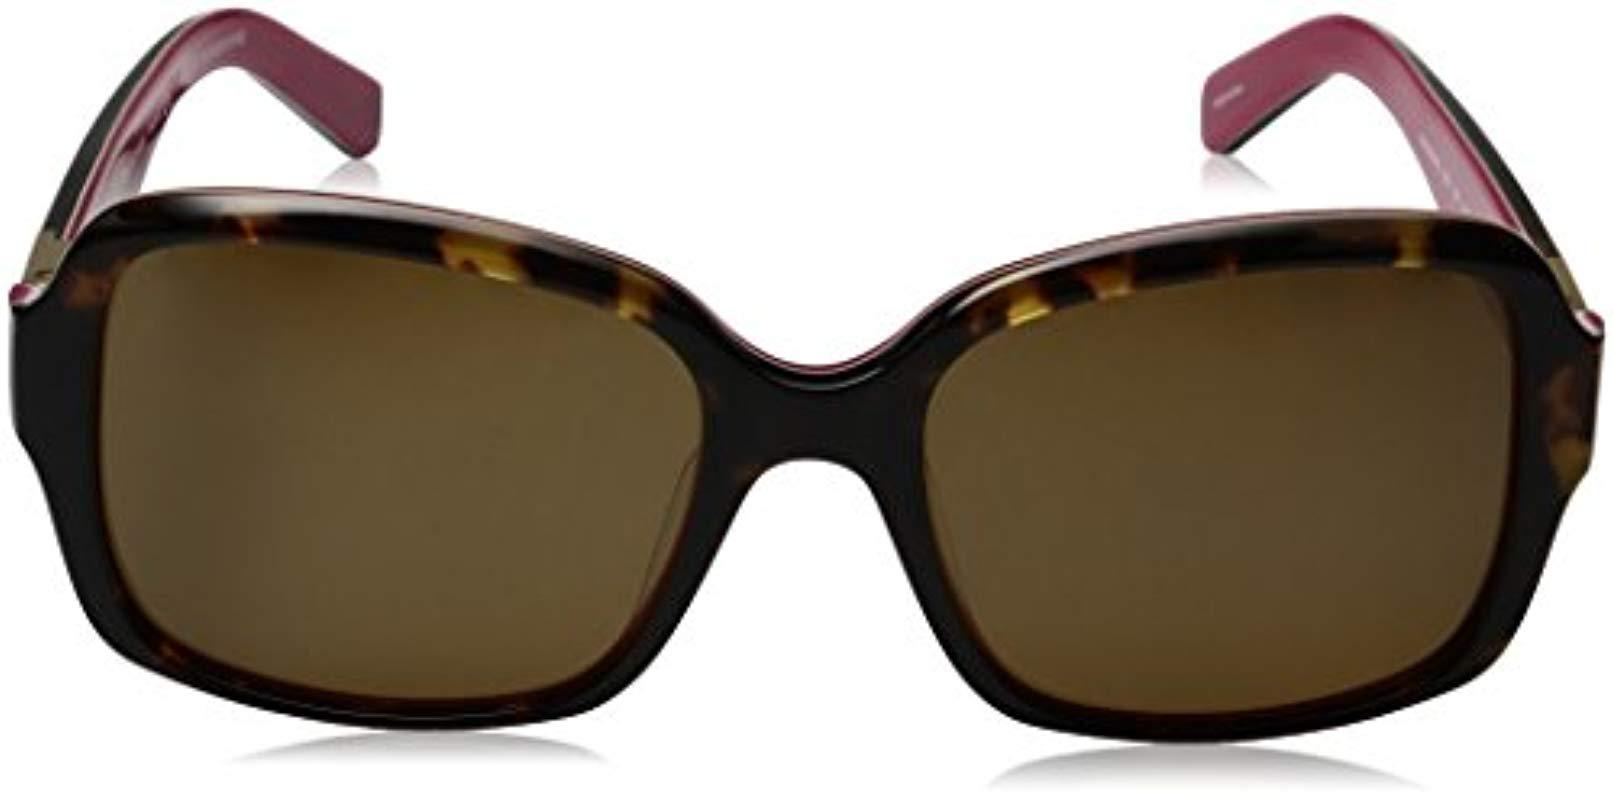 b7c51fe337a00 ... Kate Spade Annora ps Annorps Polarized Rectangular Sunglasses - Lyst.  View fullscreen